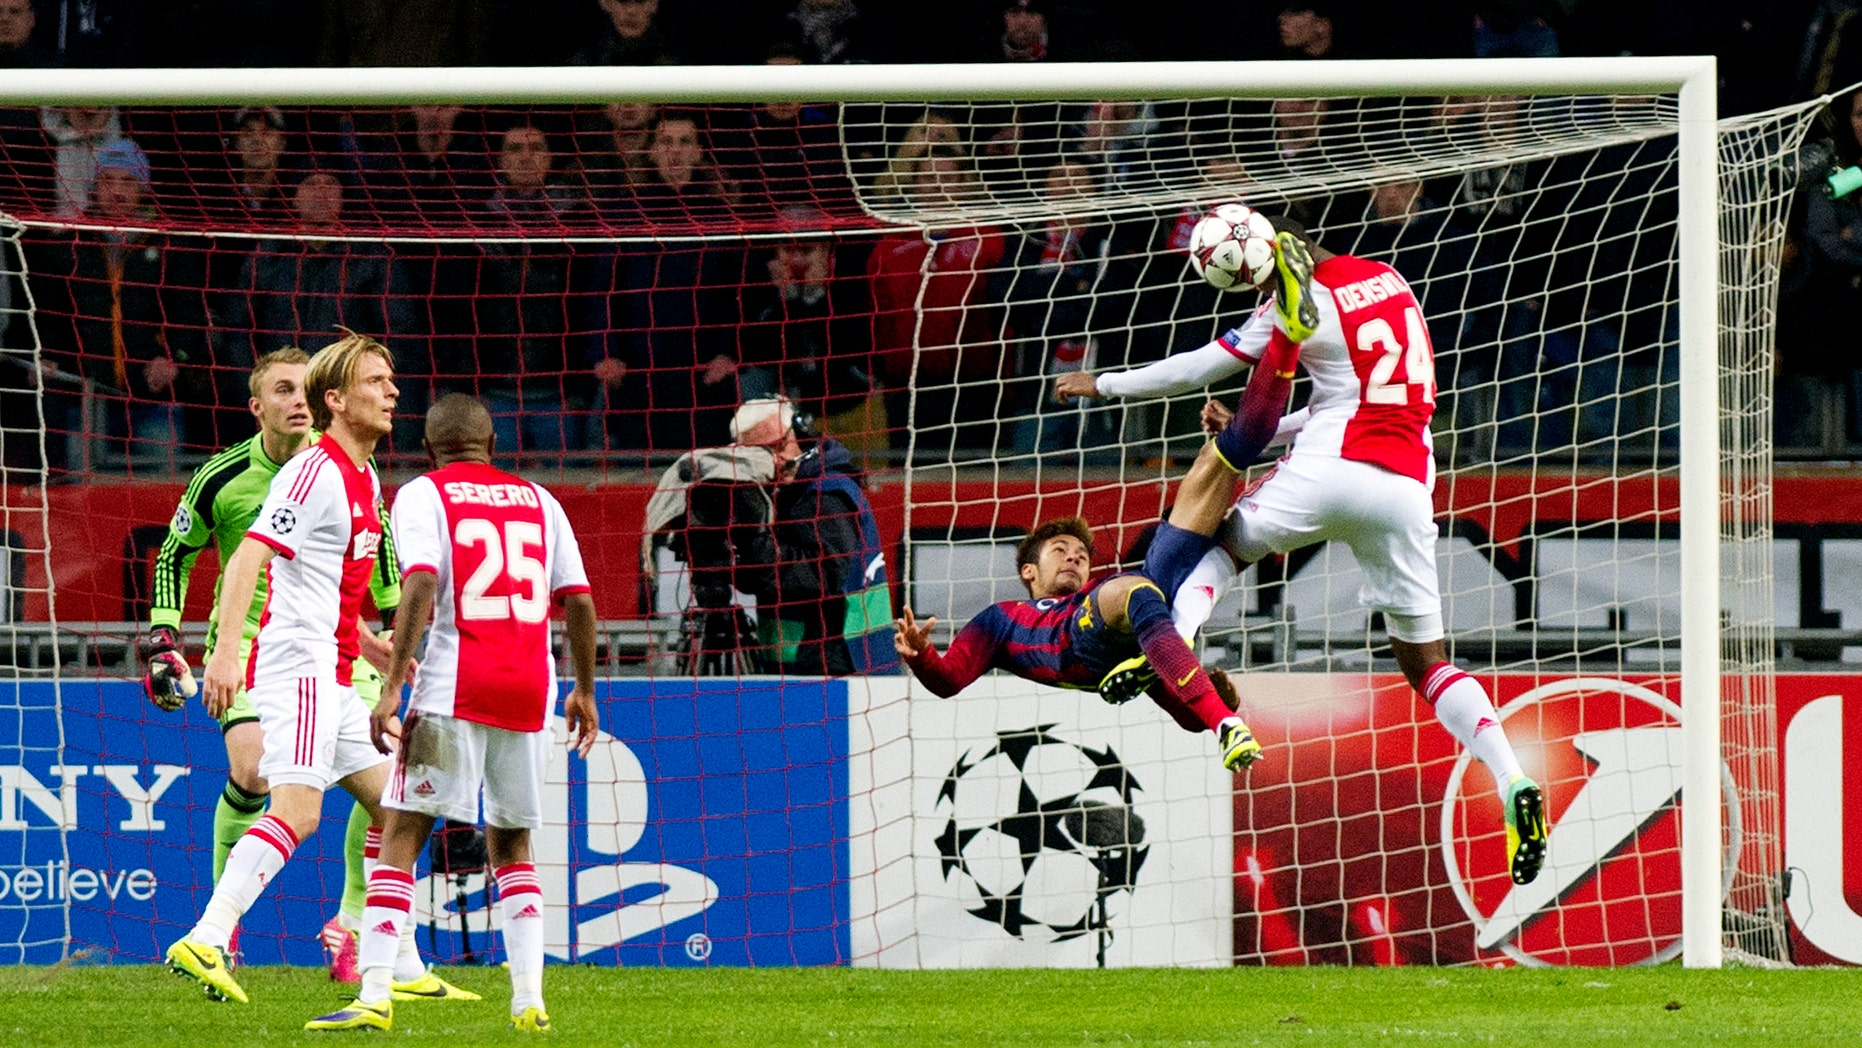 Barcelona's Neymar, second right, challenges Ajax's Stefano Denswil, first right, during the Group H Champions League soccer match between Ajax and FC Barcelona at the ArenA stadium in Amsterdam, Netherlands, Tuesday Nov. 26, 2013. (AP Photo/Patrick Post)